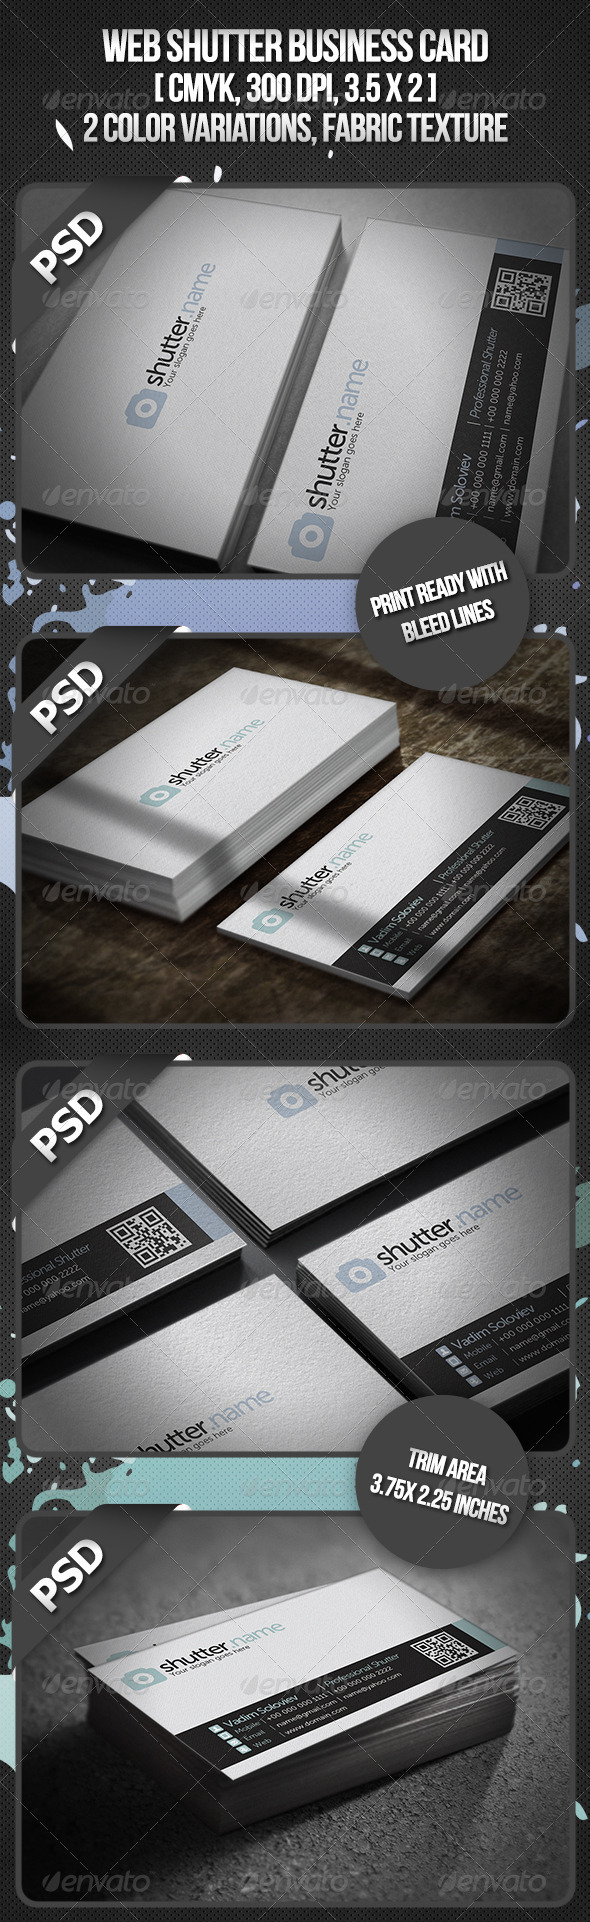 Web Shutter Business Card - Corporate Business Cards